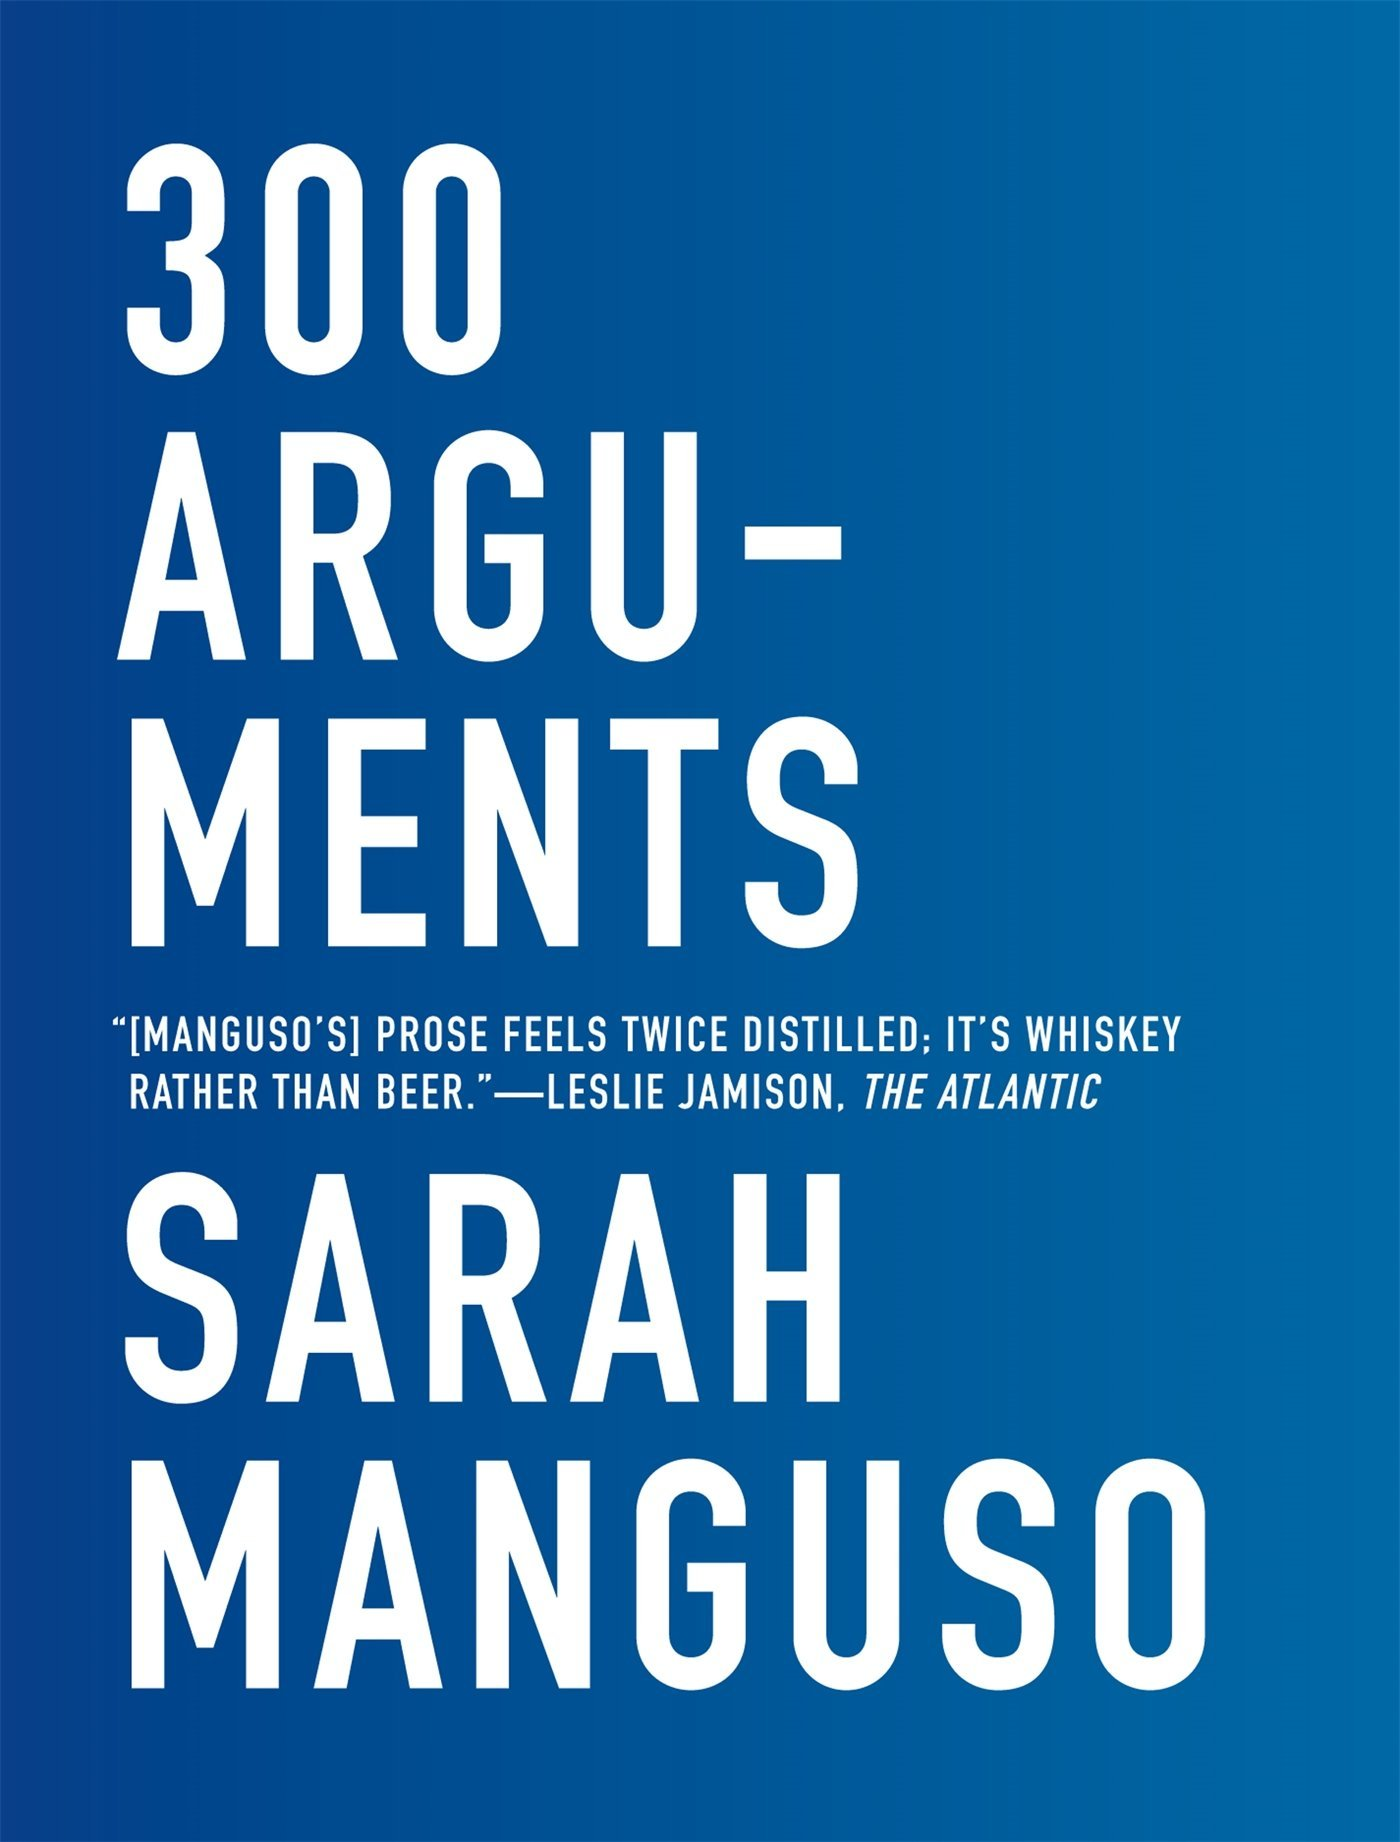 essays in love review guardian